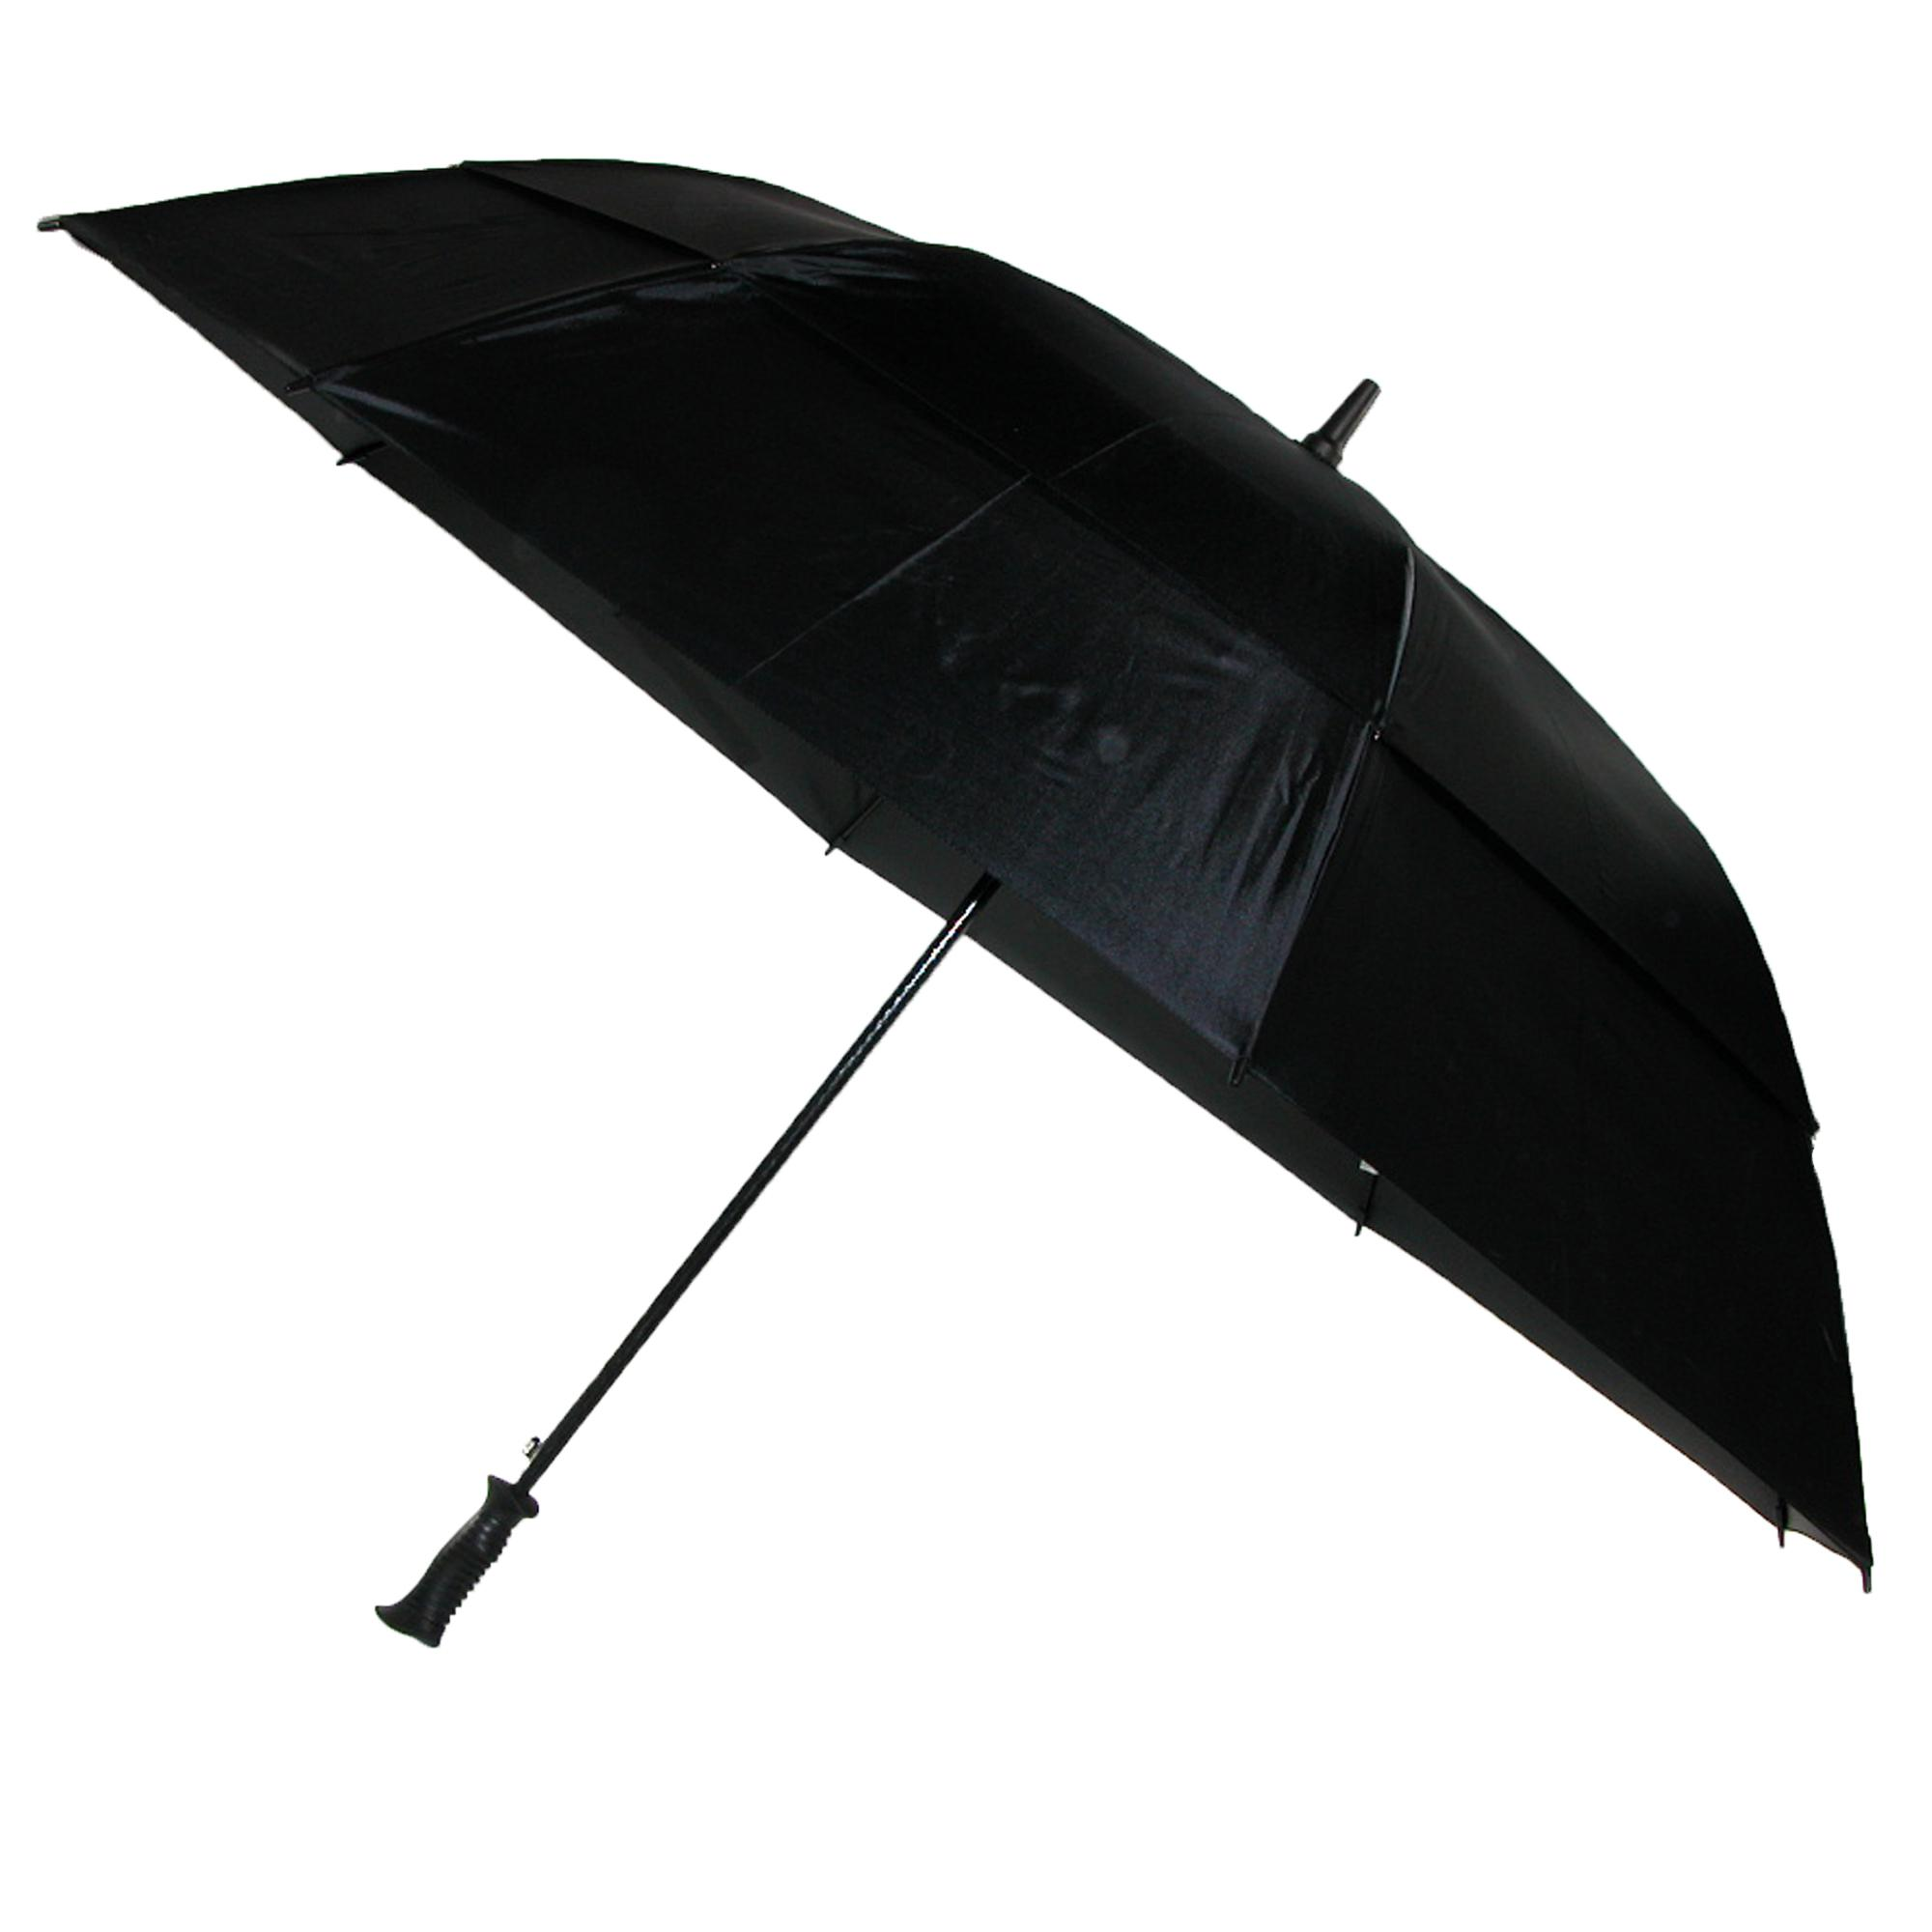 Totes_Extra_Large_67_Inch_Vented_Canopy_Golf_Umbrella___one_size